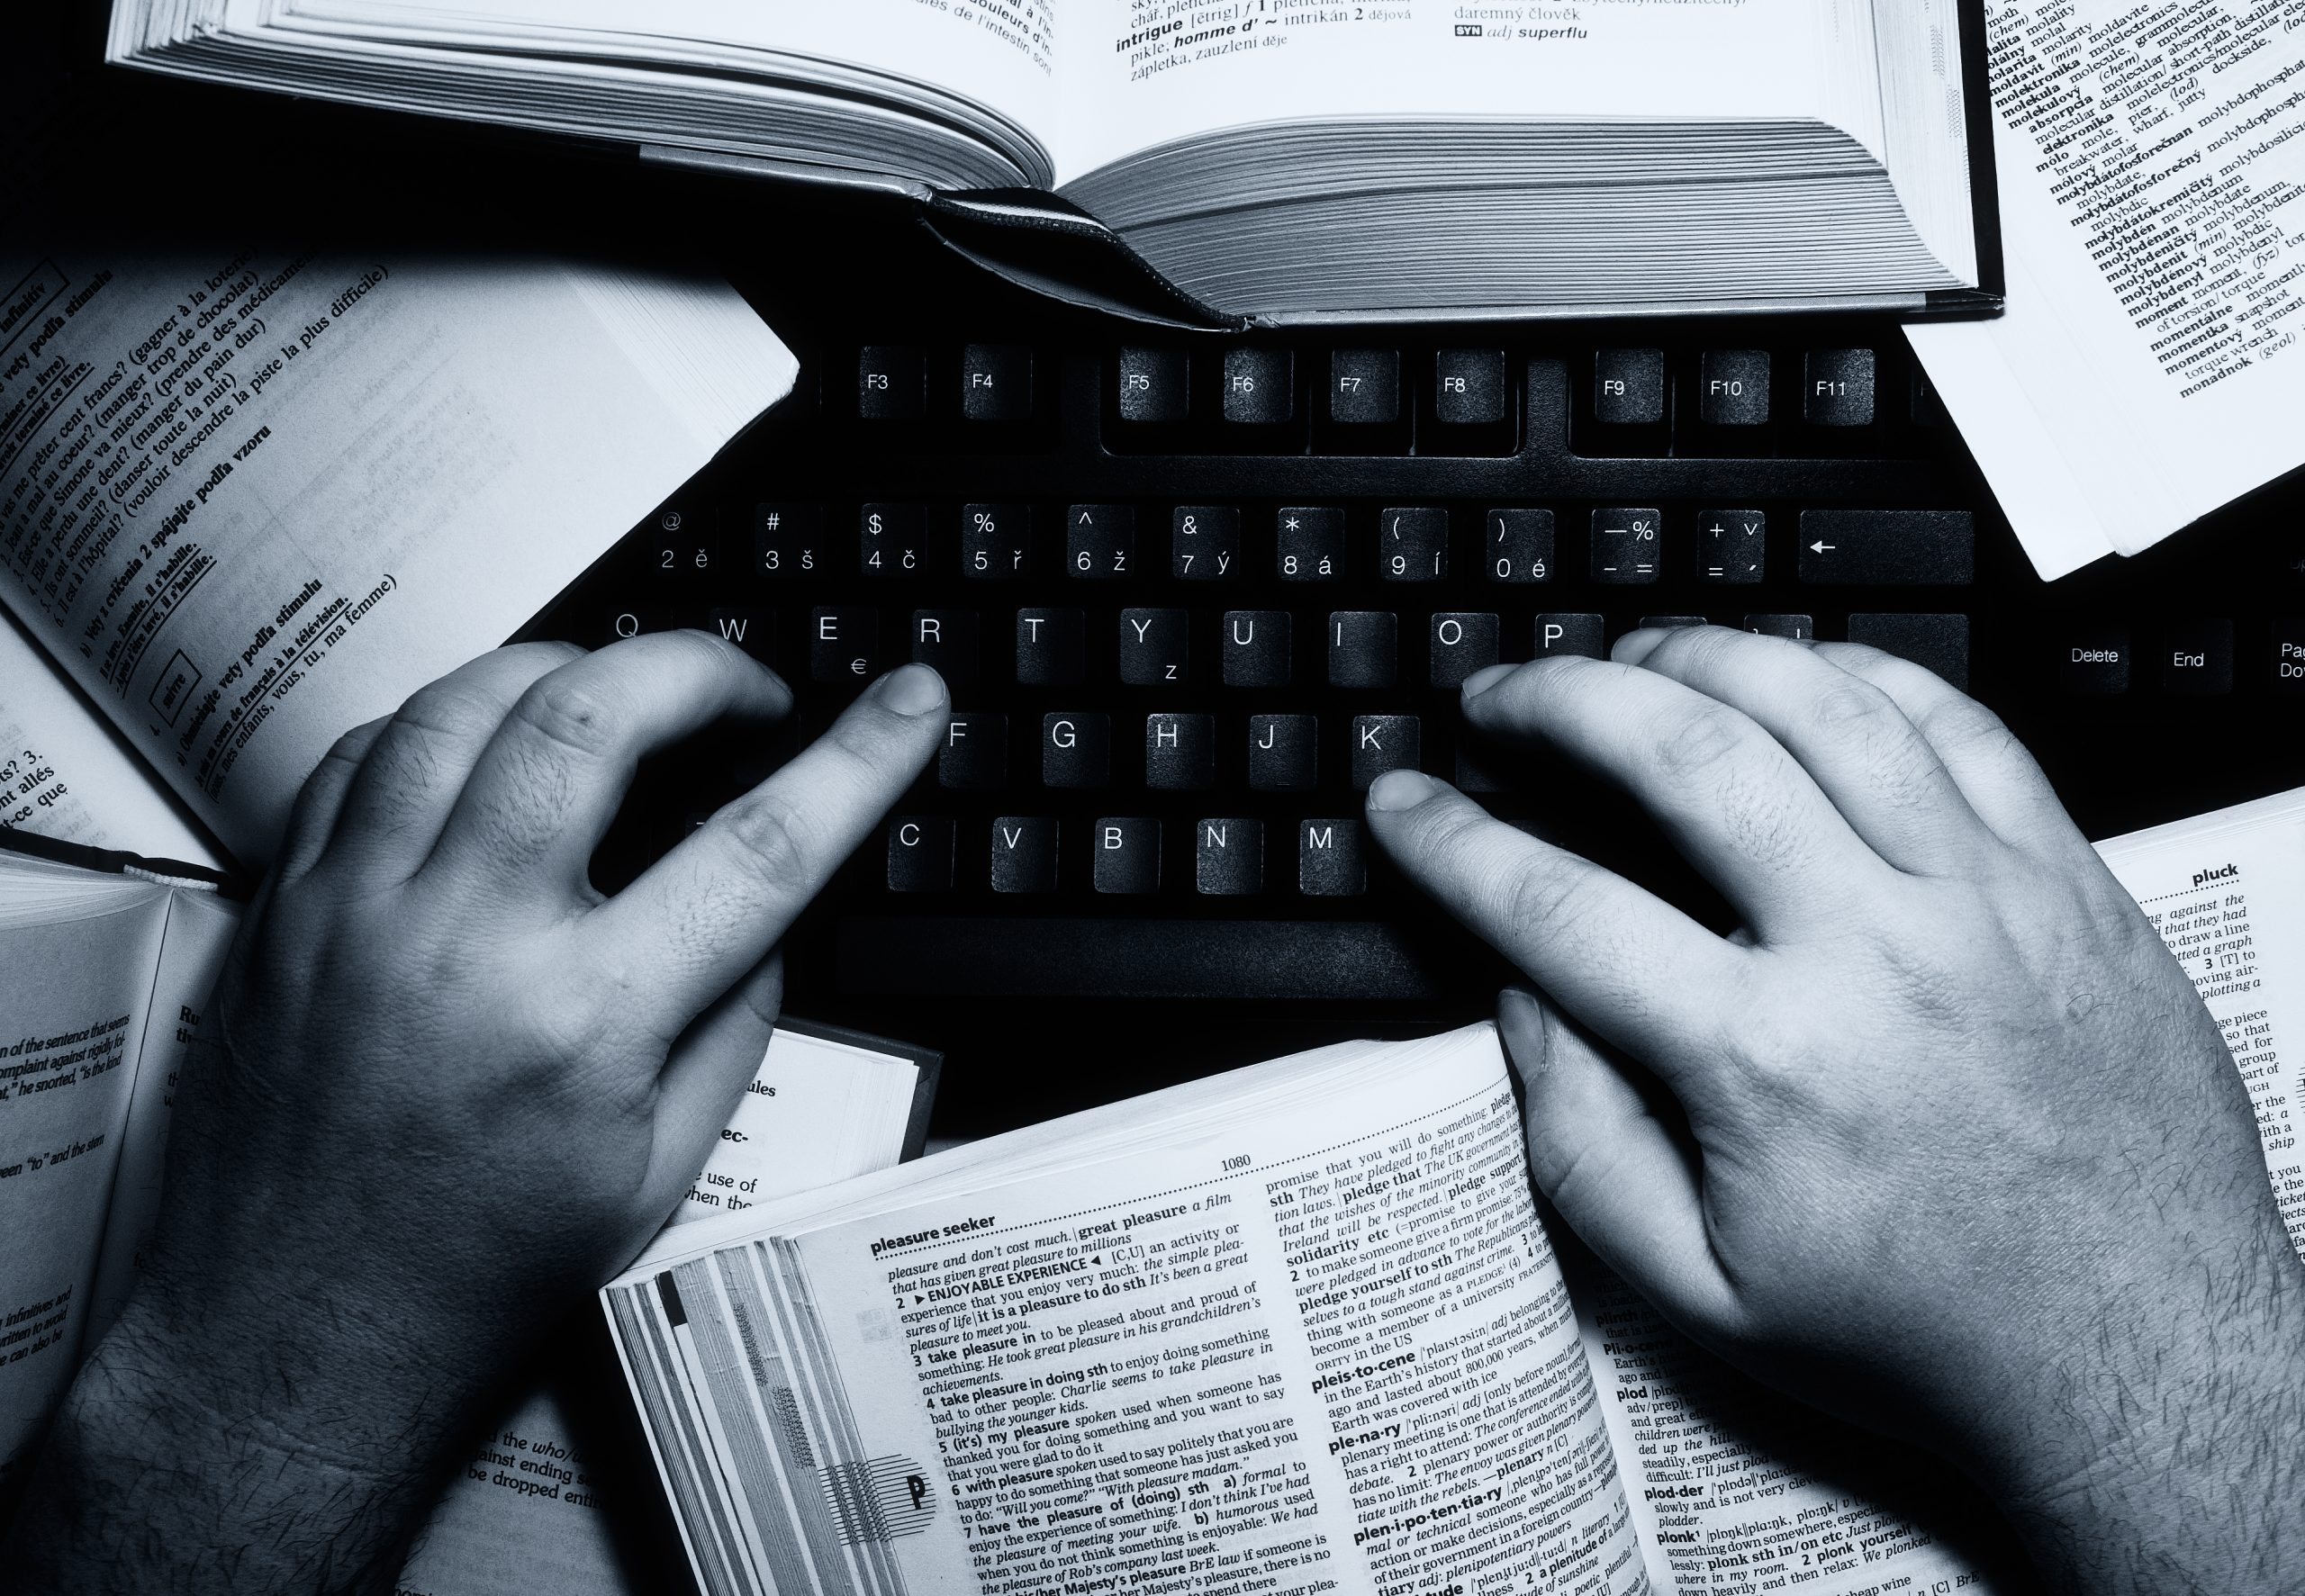 Closeup of man's hands typing on computer with dictionaries nearby